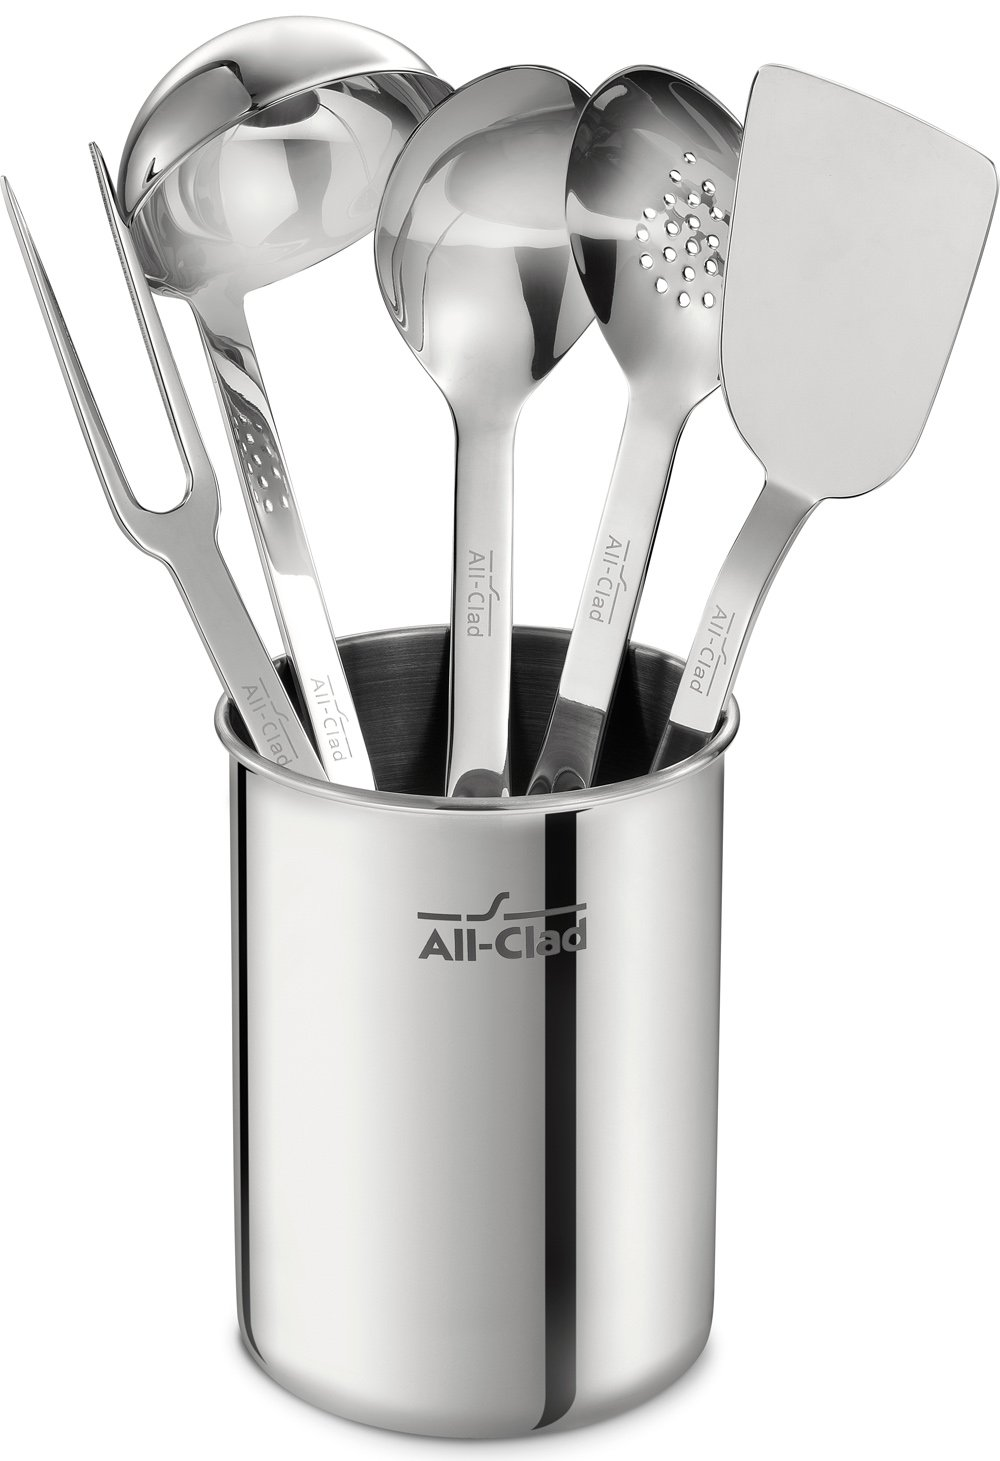 All Clad TSET1 Stainless Steel Kitchen Tool Set Caddy Included, 6 Piece,